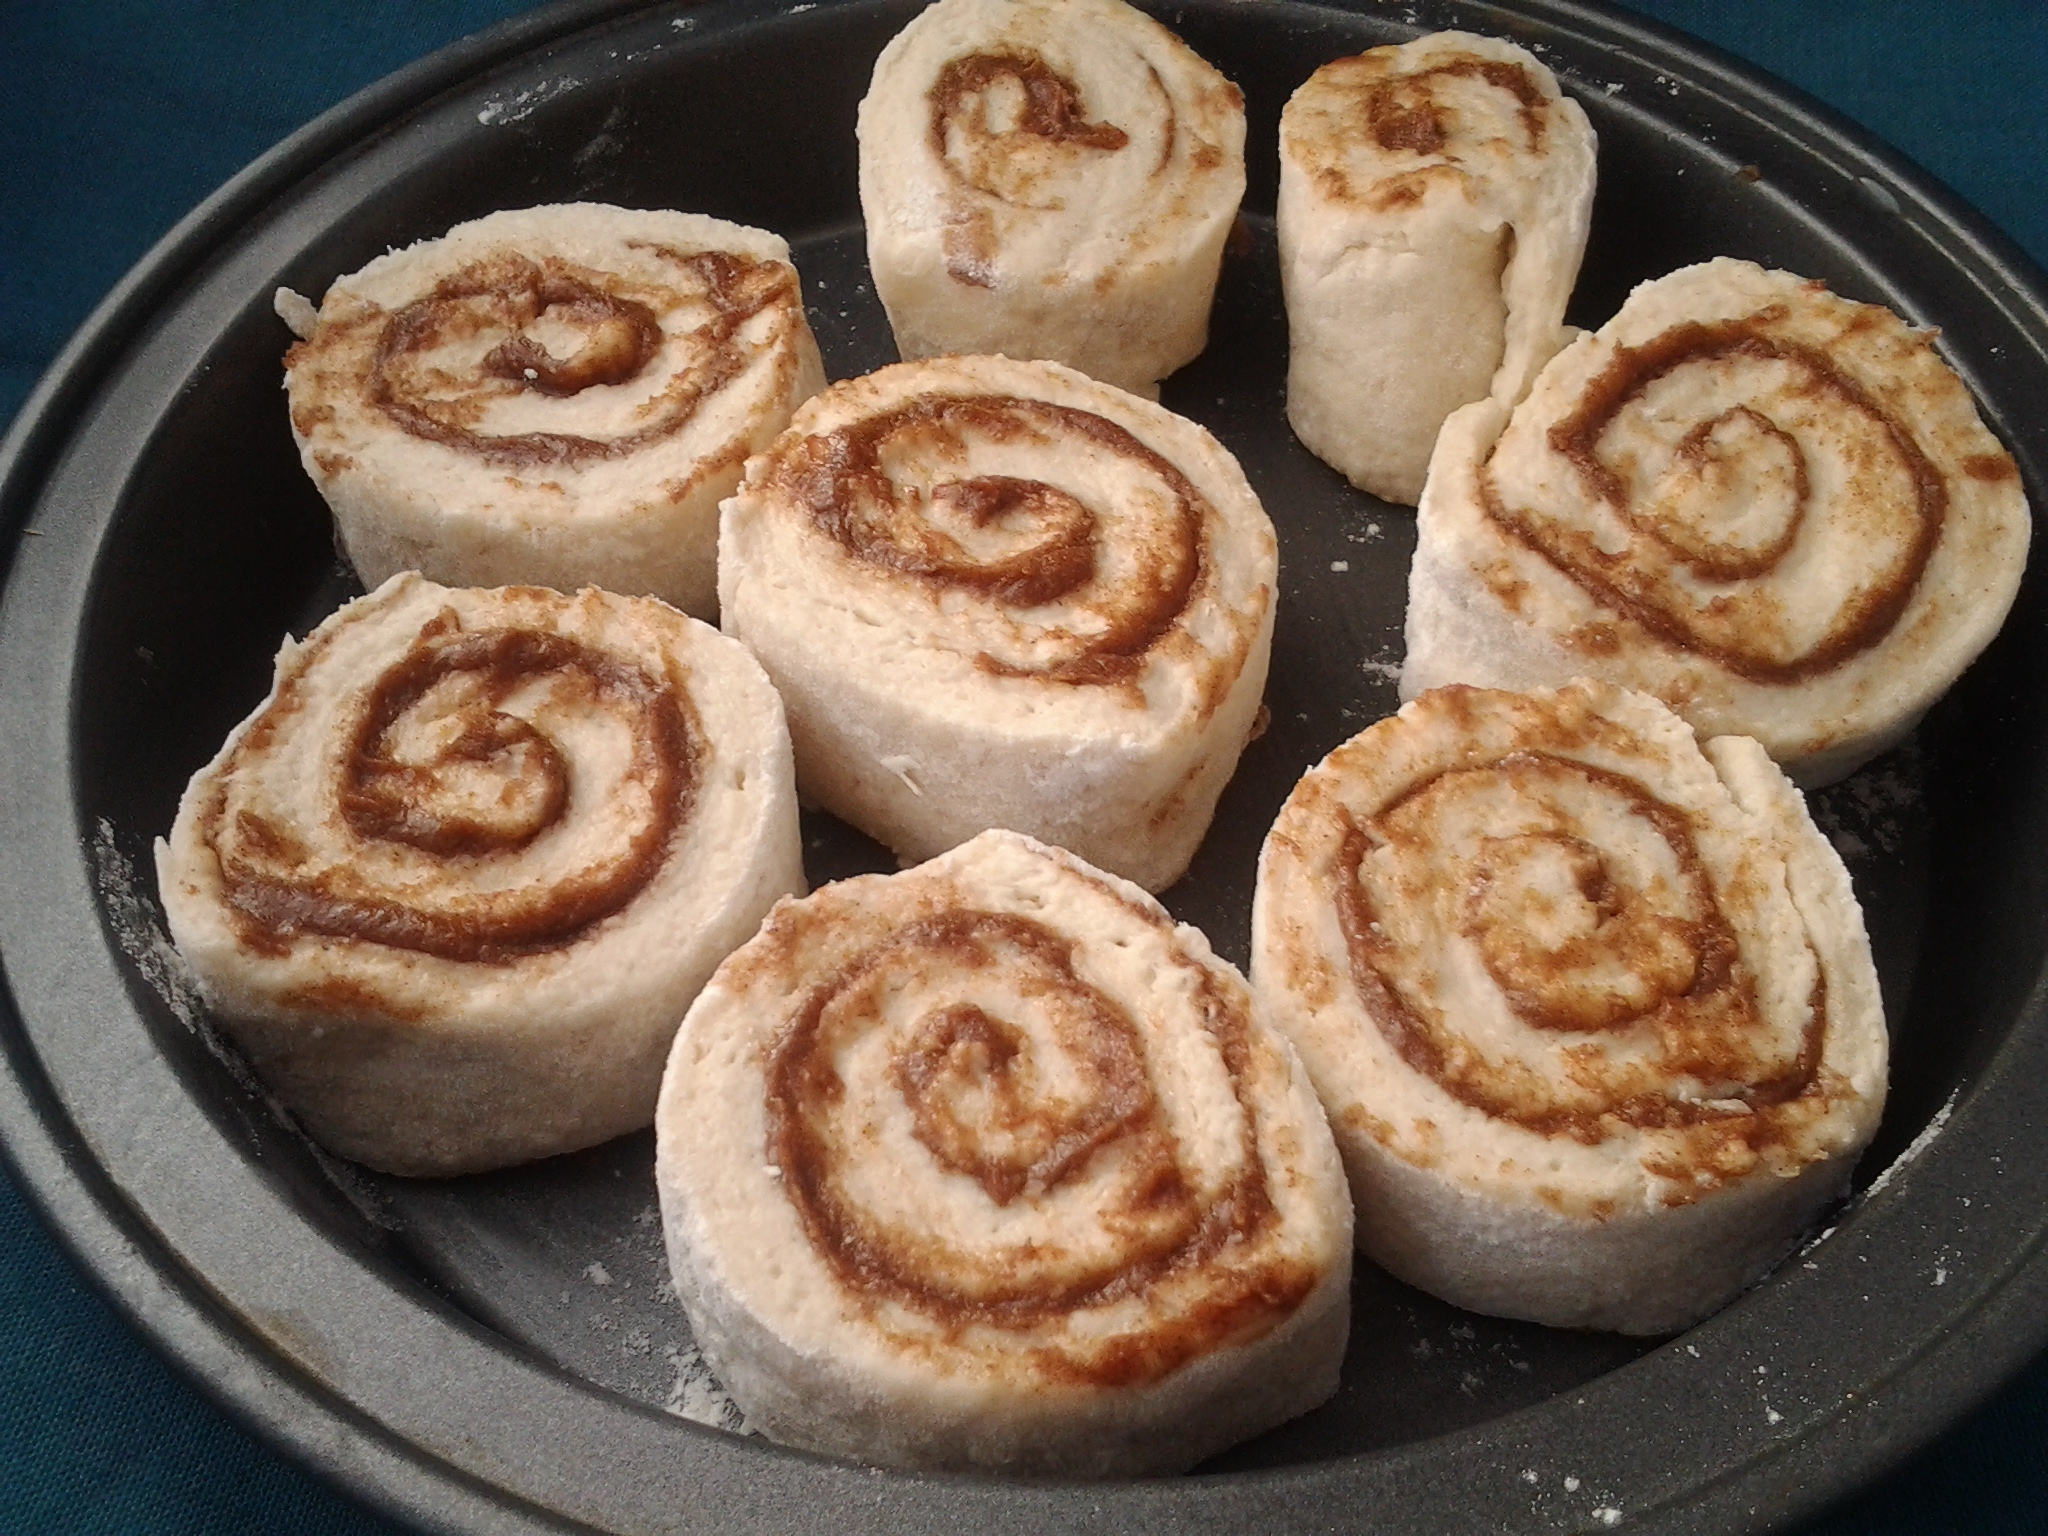 cinnamon roll ready to bake